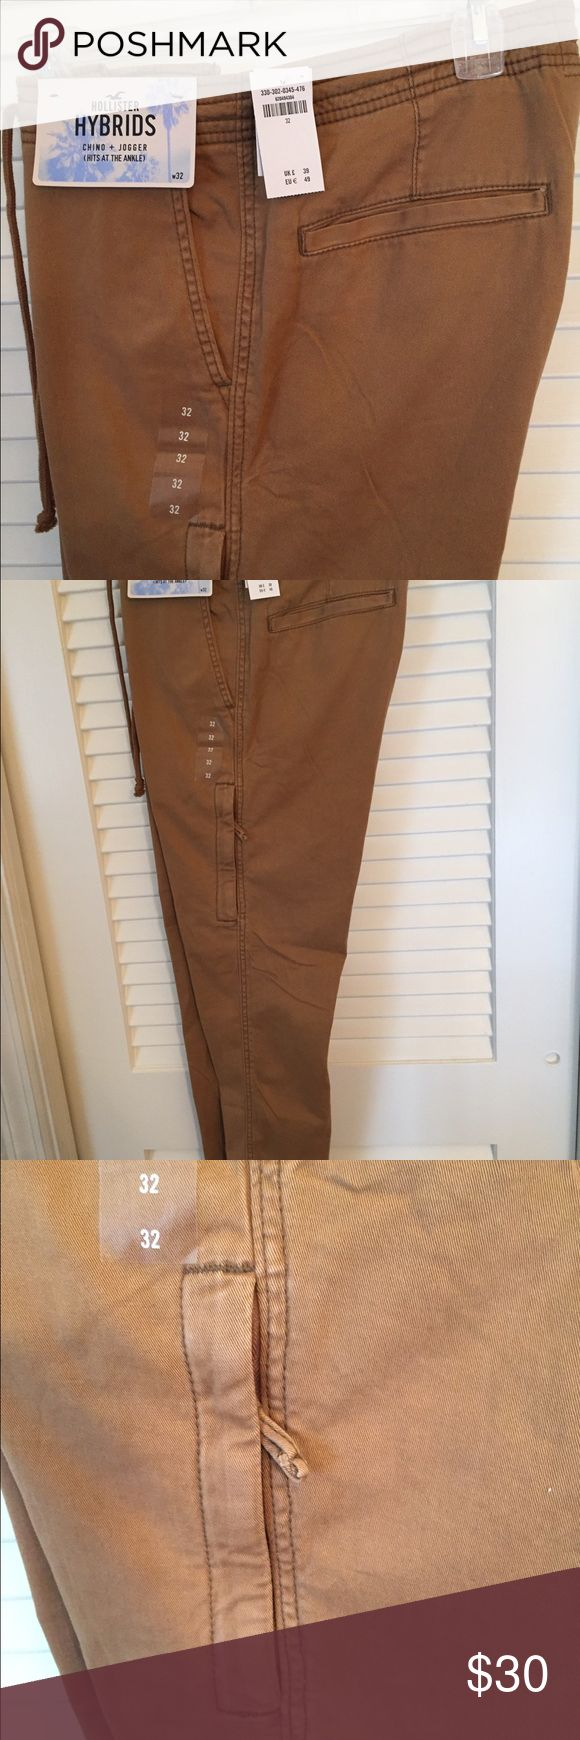 New Men's Hollister Chino Joggers New with tags Men's Chino Joggers. Hollister Pants Chinos & Khakis